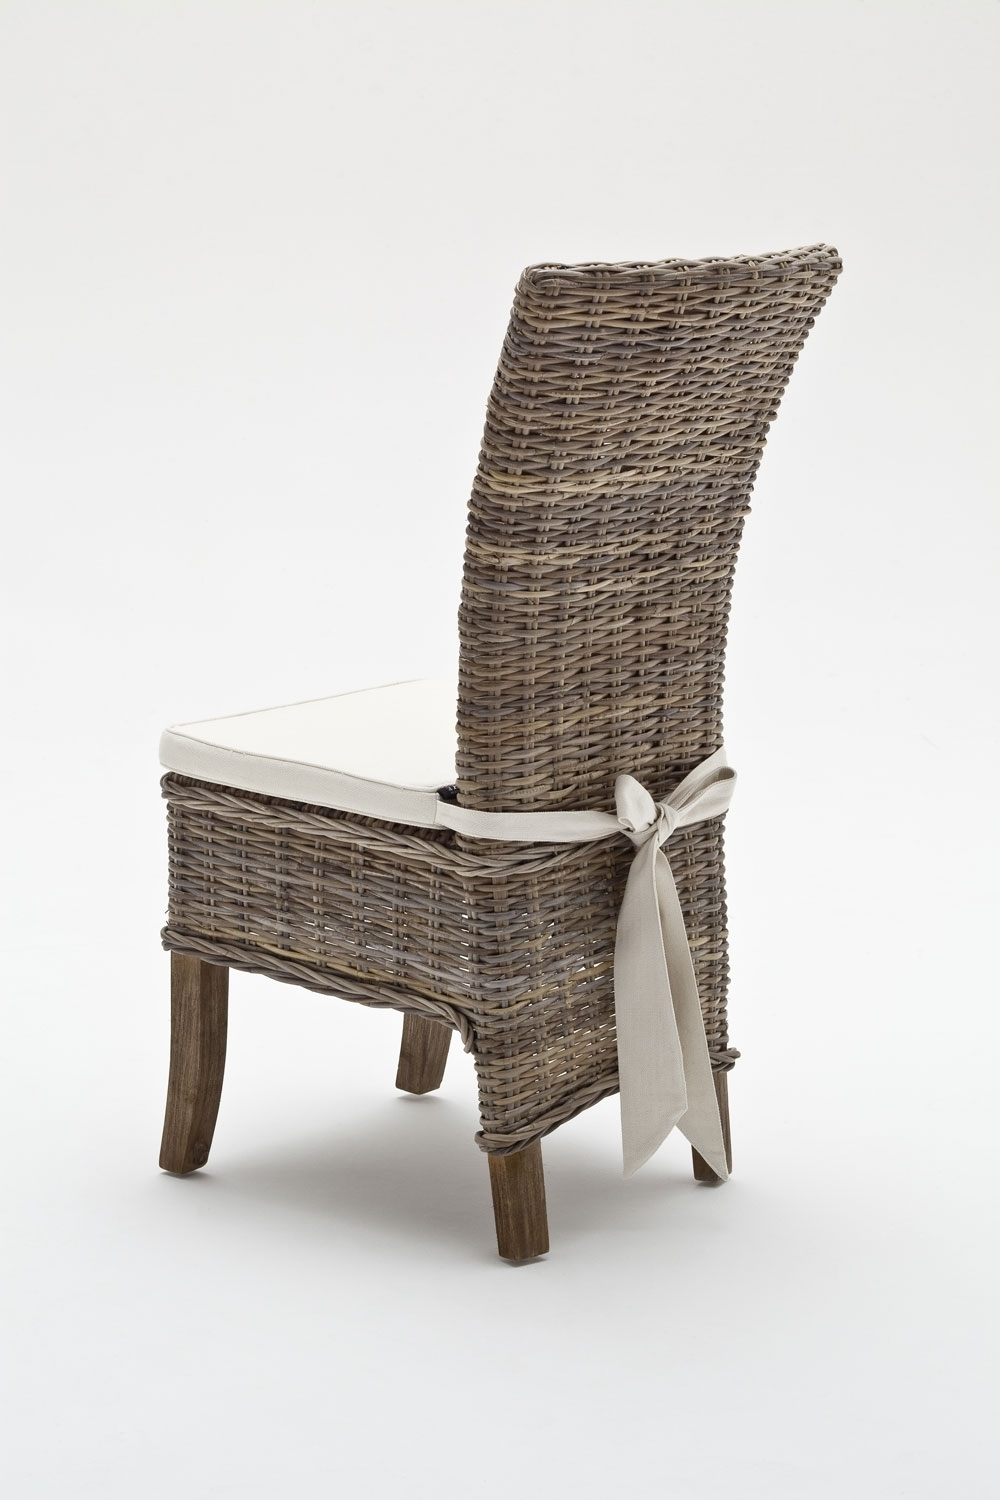 Banana Leaf Chairs With Cushion For Well Known Wicker Chair Cushions – Lisaasmith (View 3 of 20)